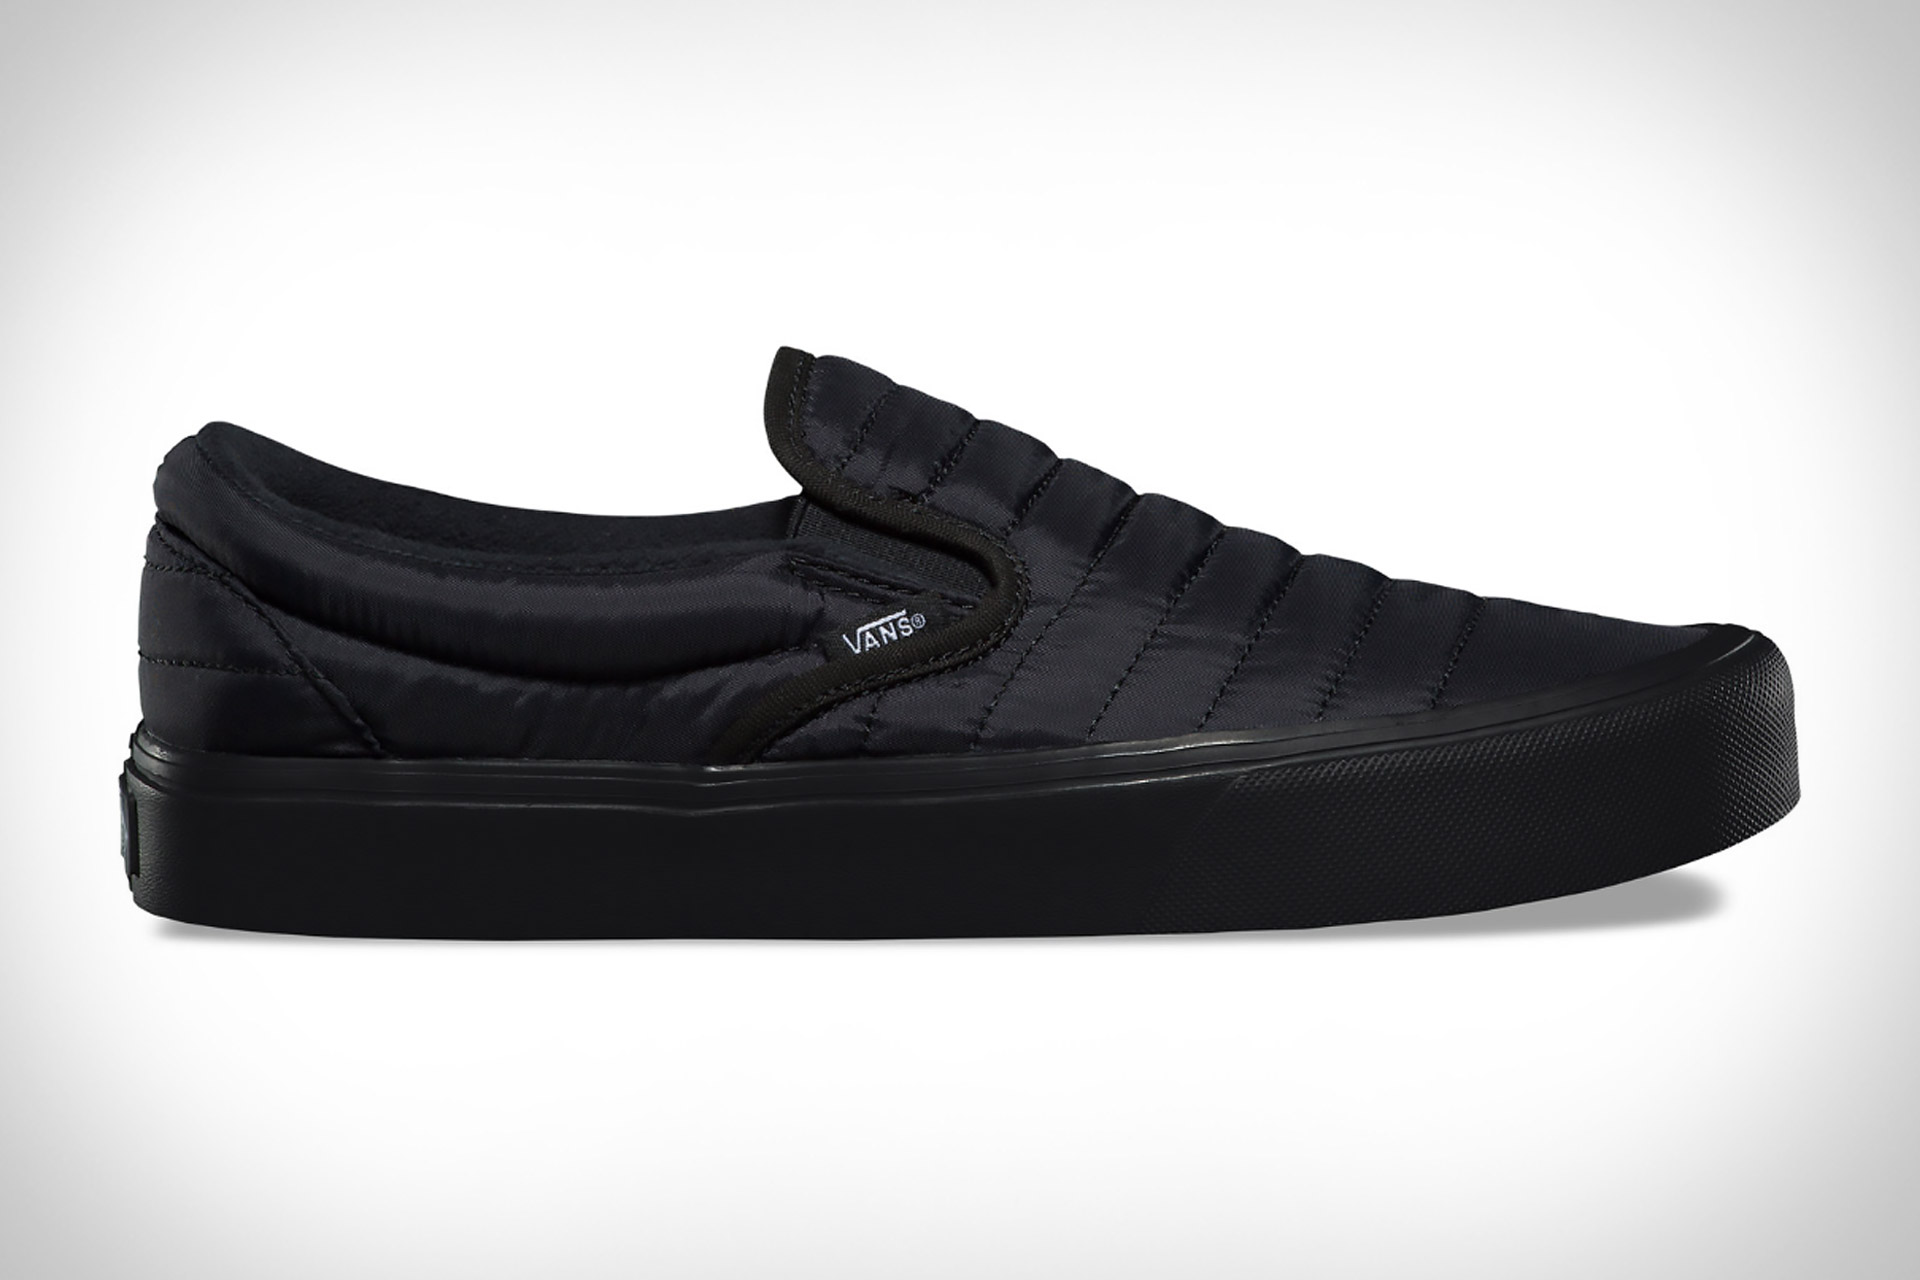 845b8e35a3f Vans Quilted Slip-On Lite Shoe